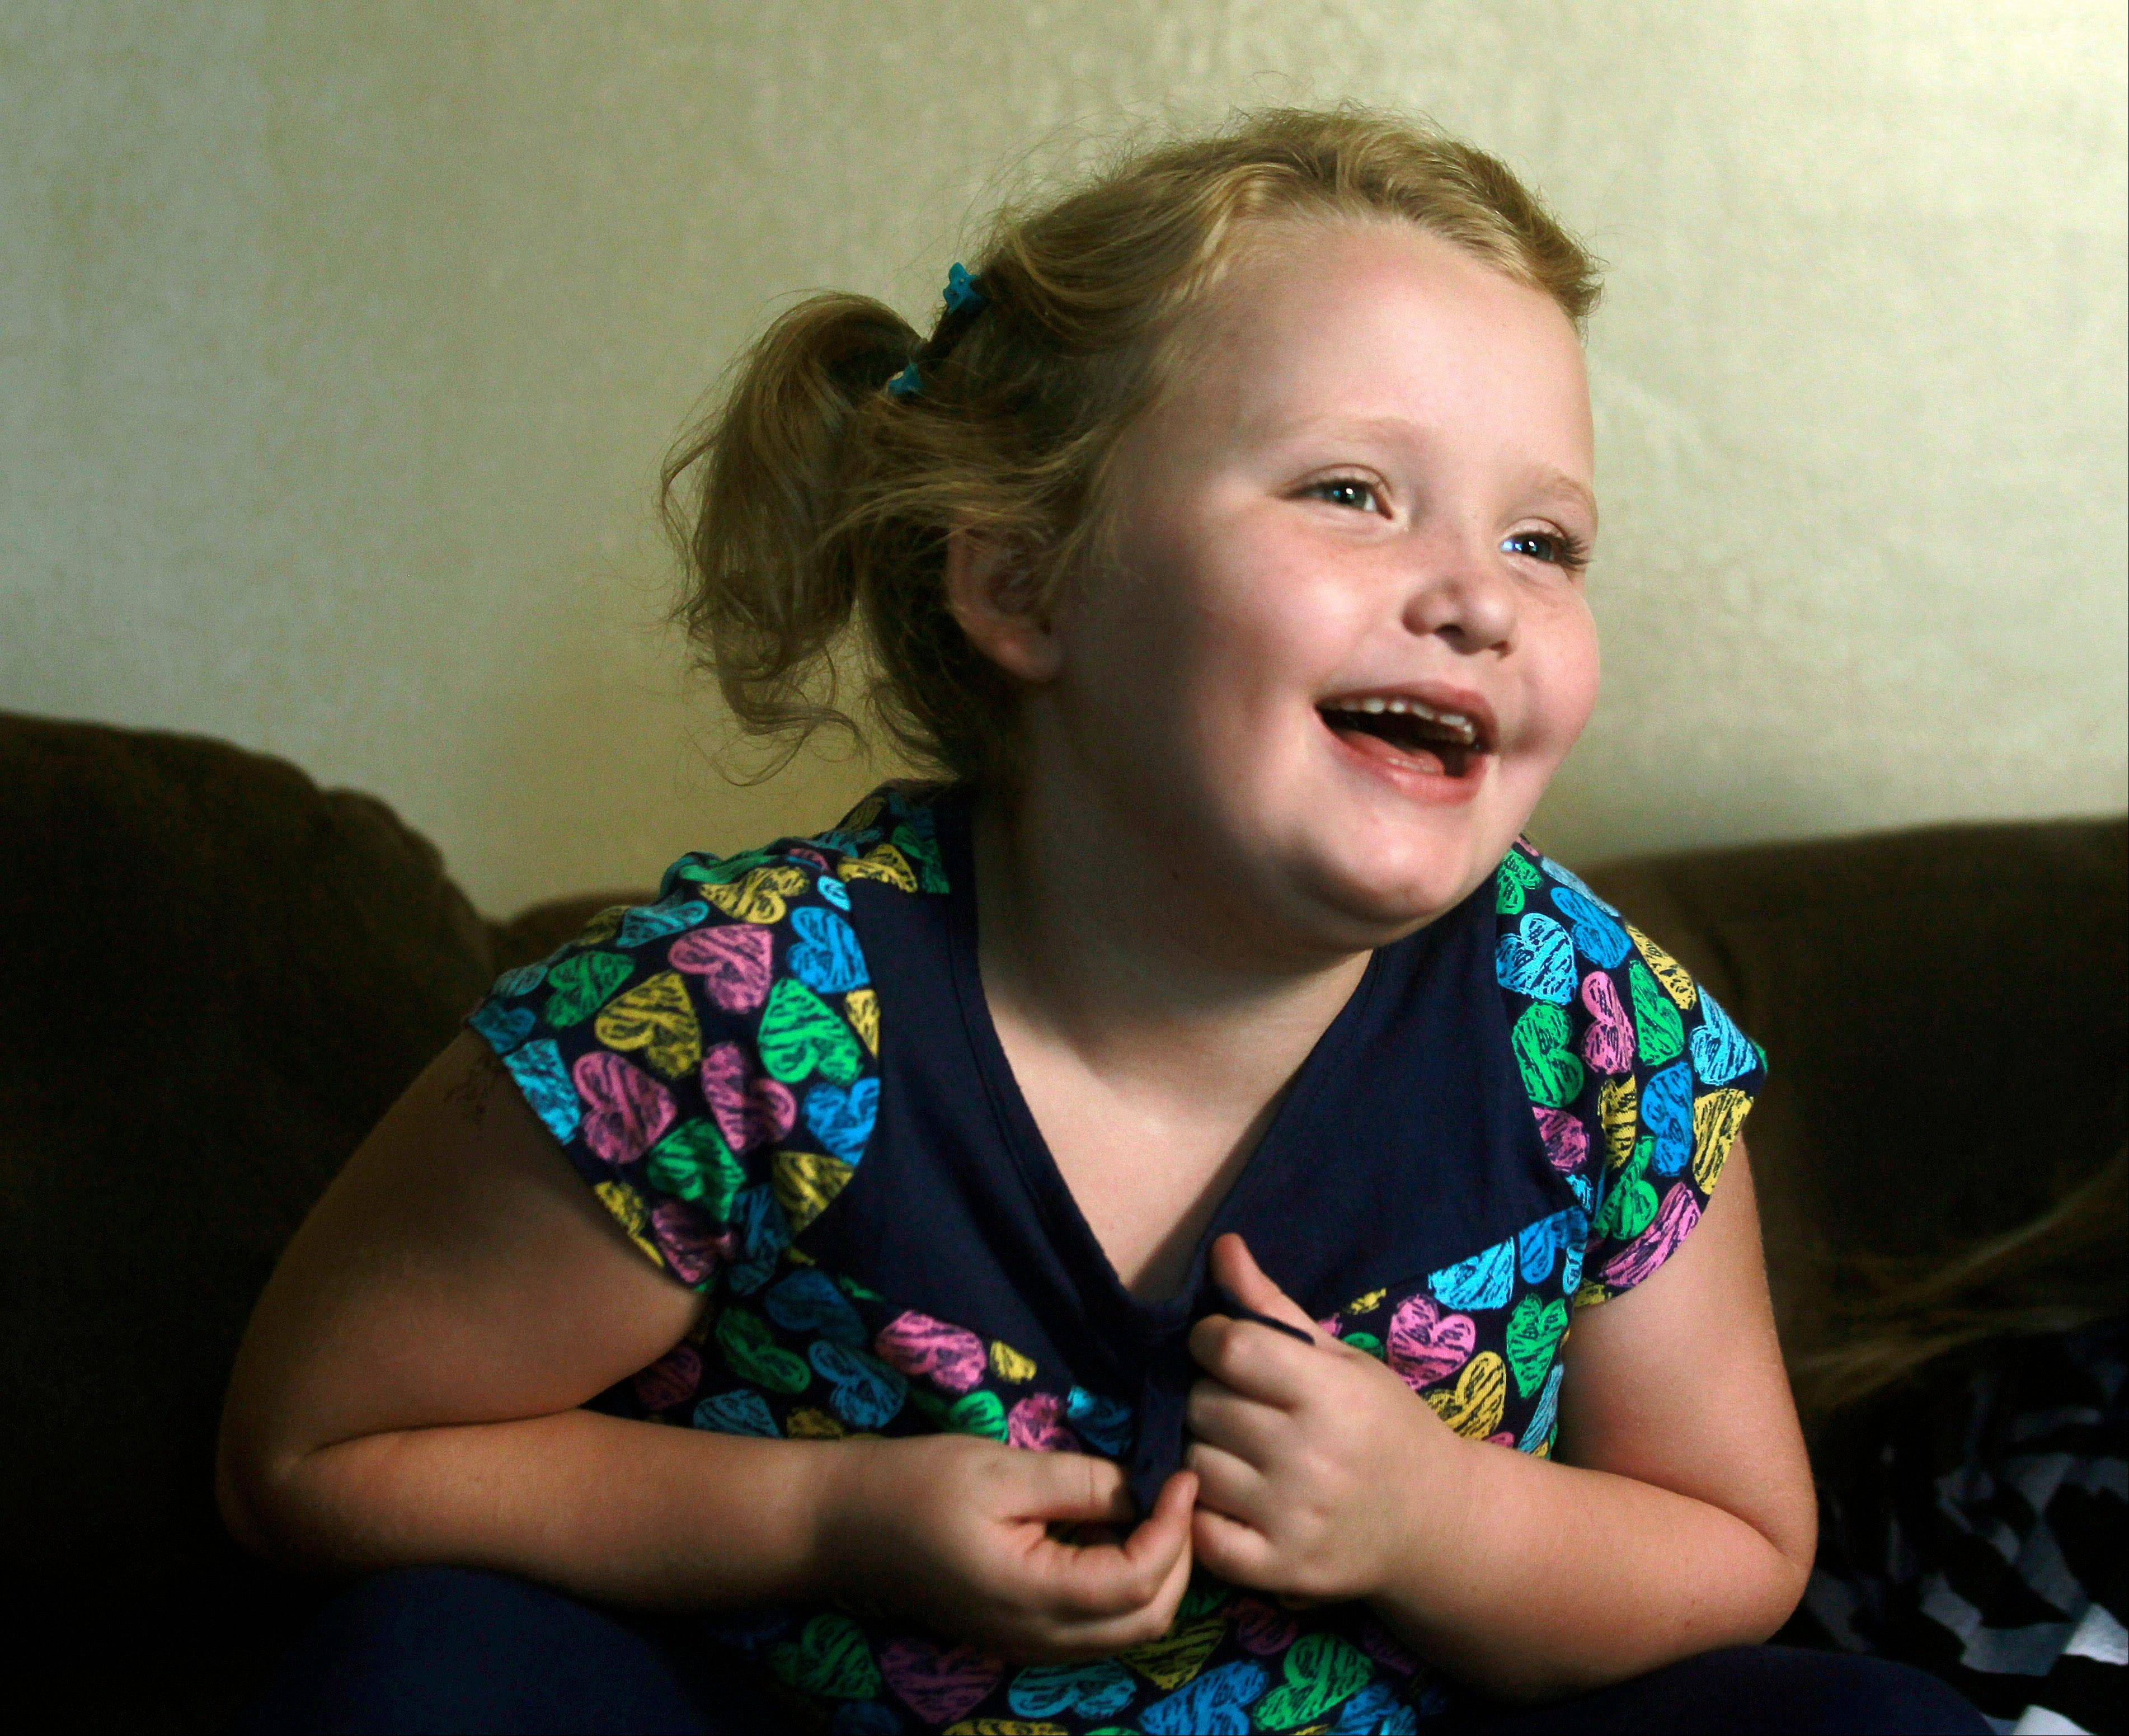 Seven-year-old Alana �Honey Boo Boo� Thompson is a beauty pageant regular and a reality show star.